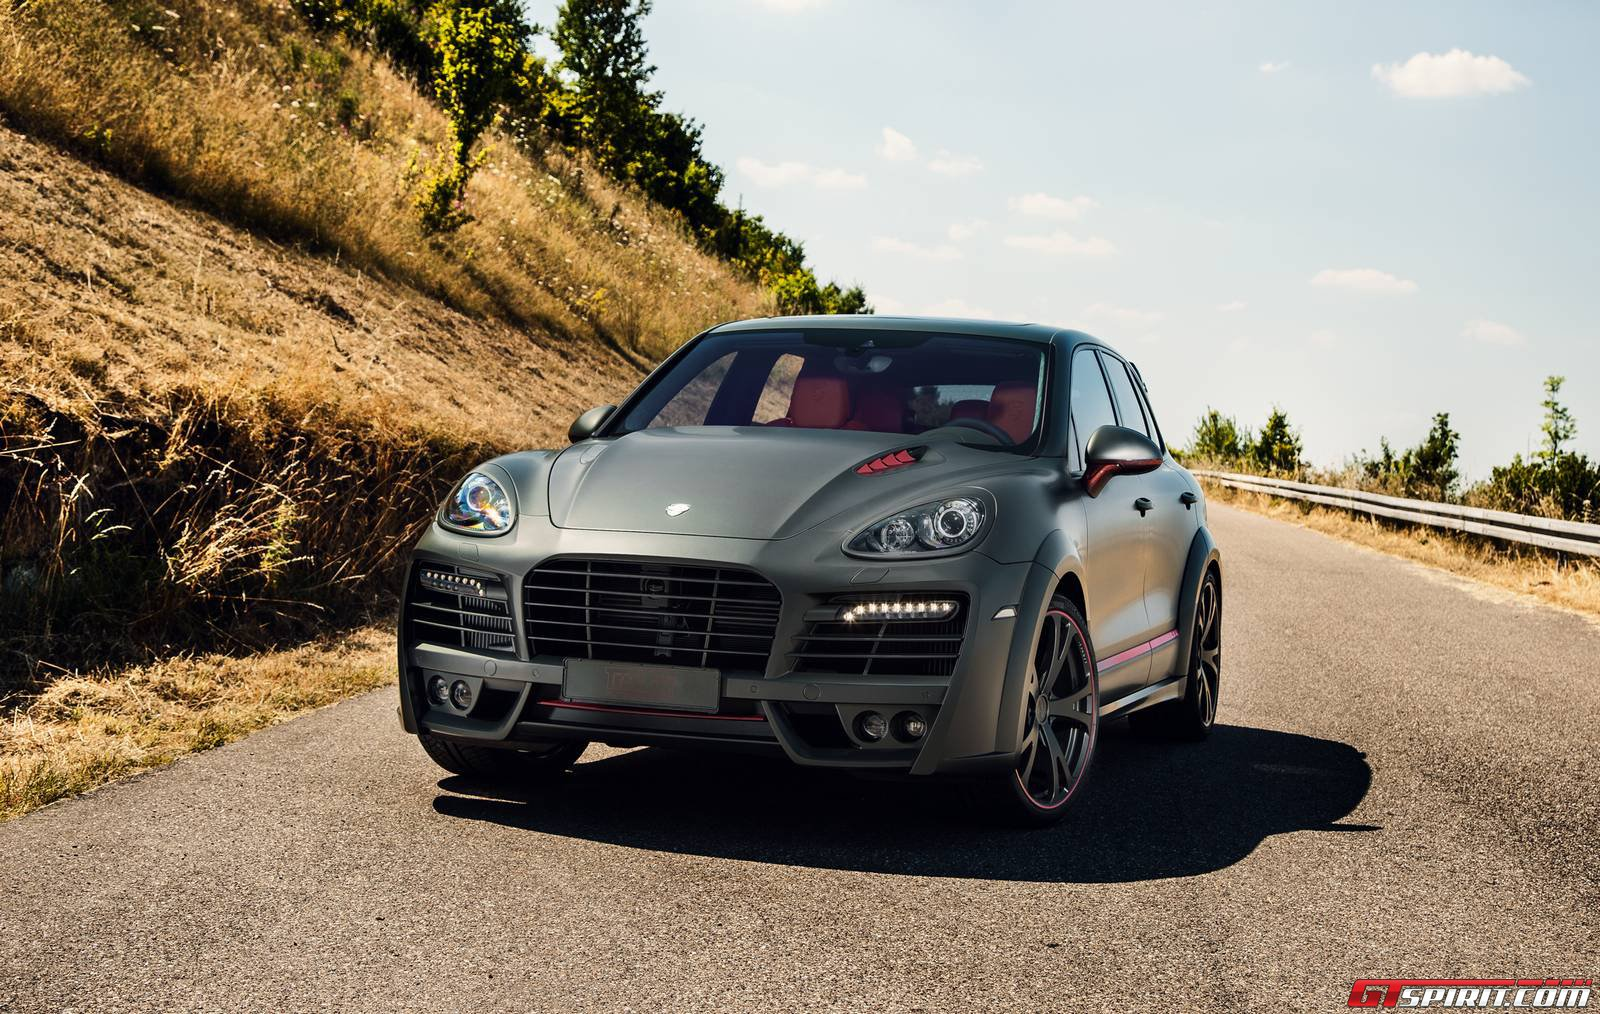 Gallery Techart Magnum Cayenne Turbo S Gtspirit